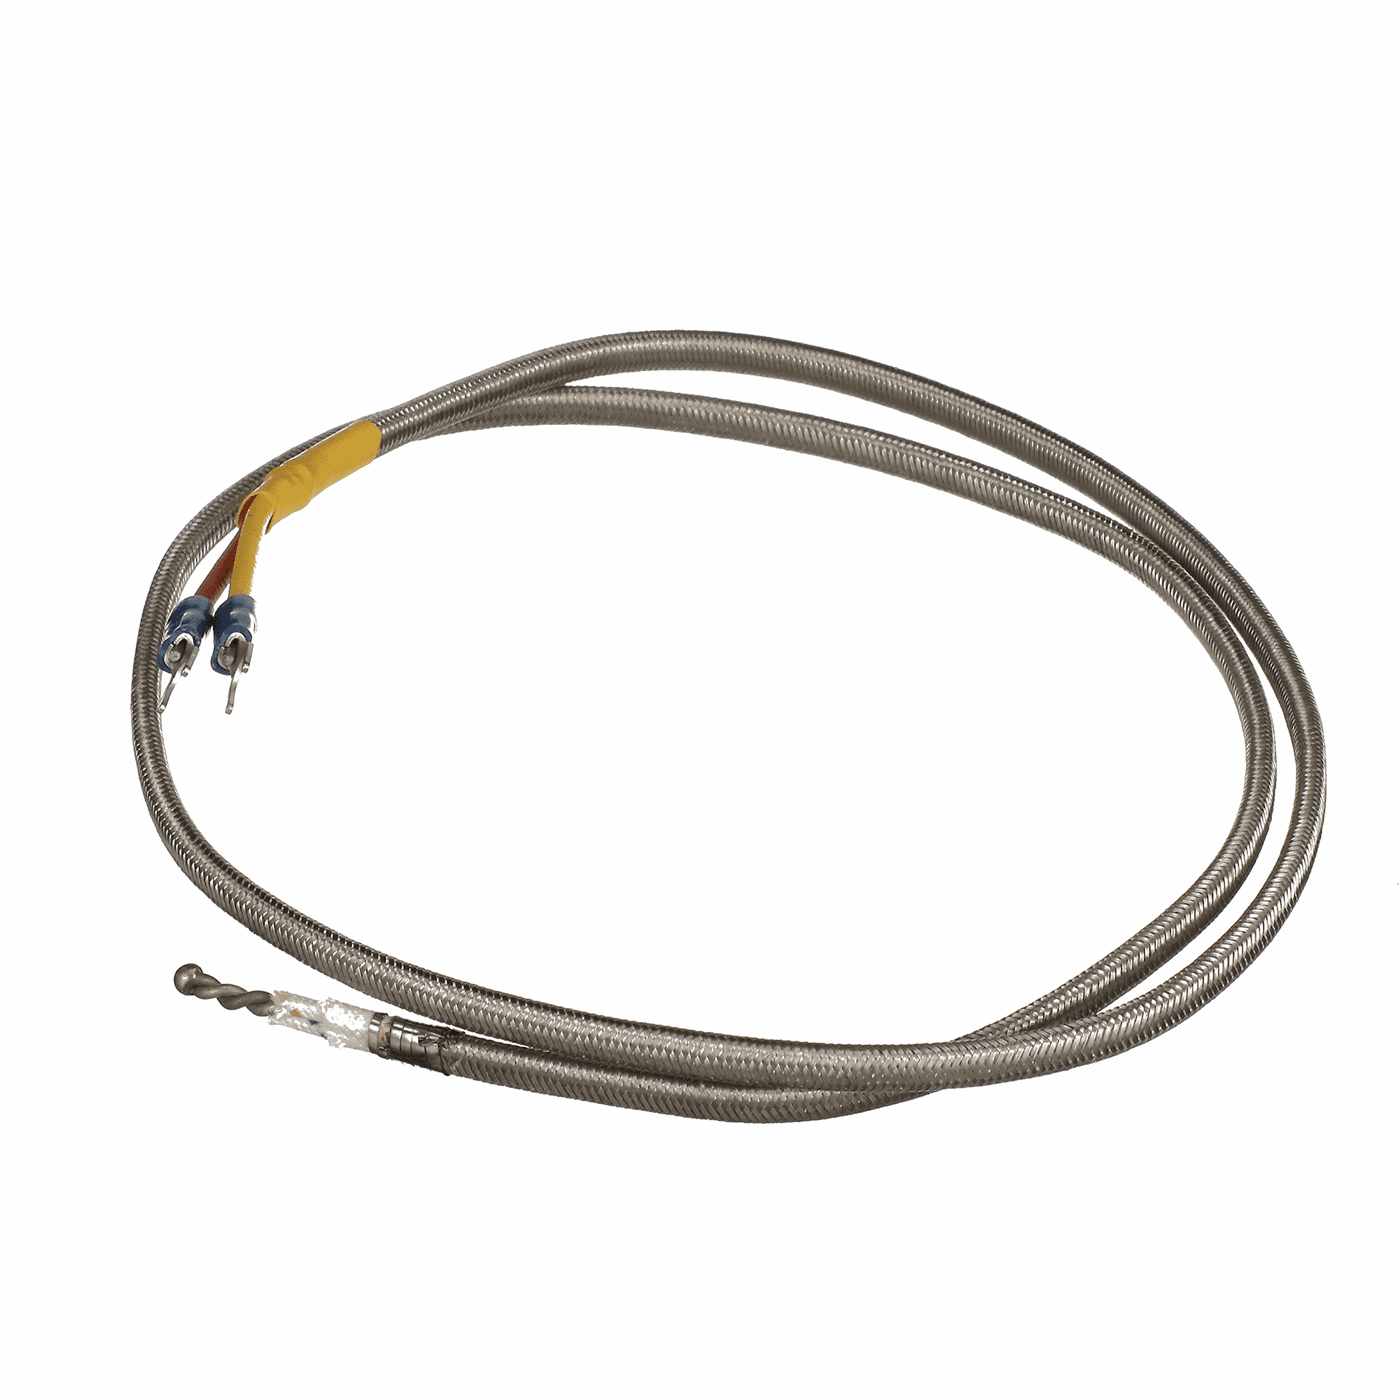 Quadrafire Thermocouple for many models see description, #812-0210-AMP